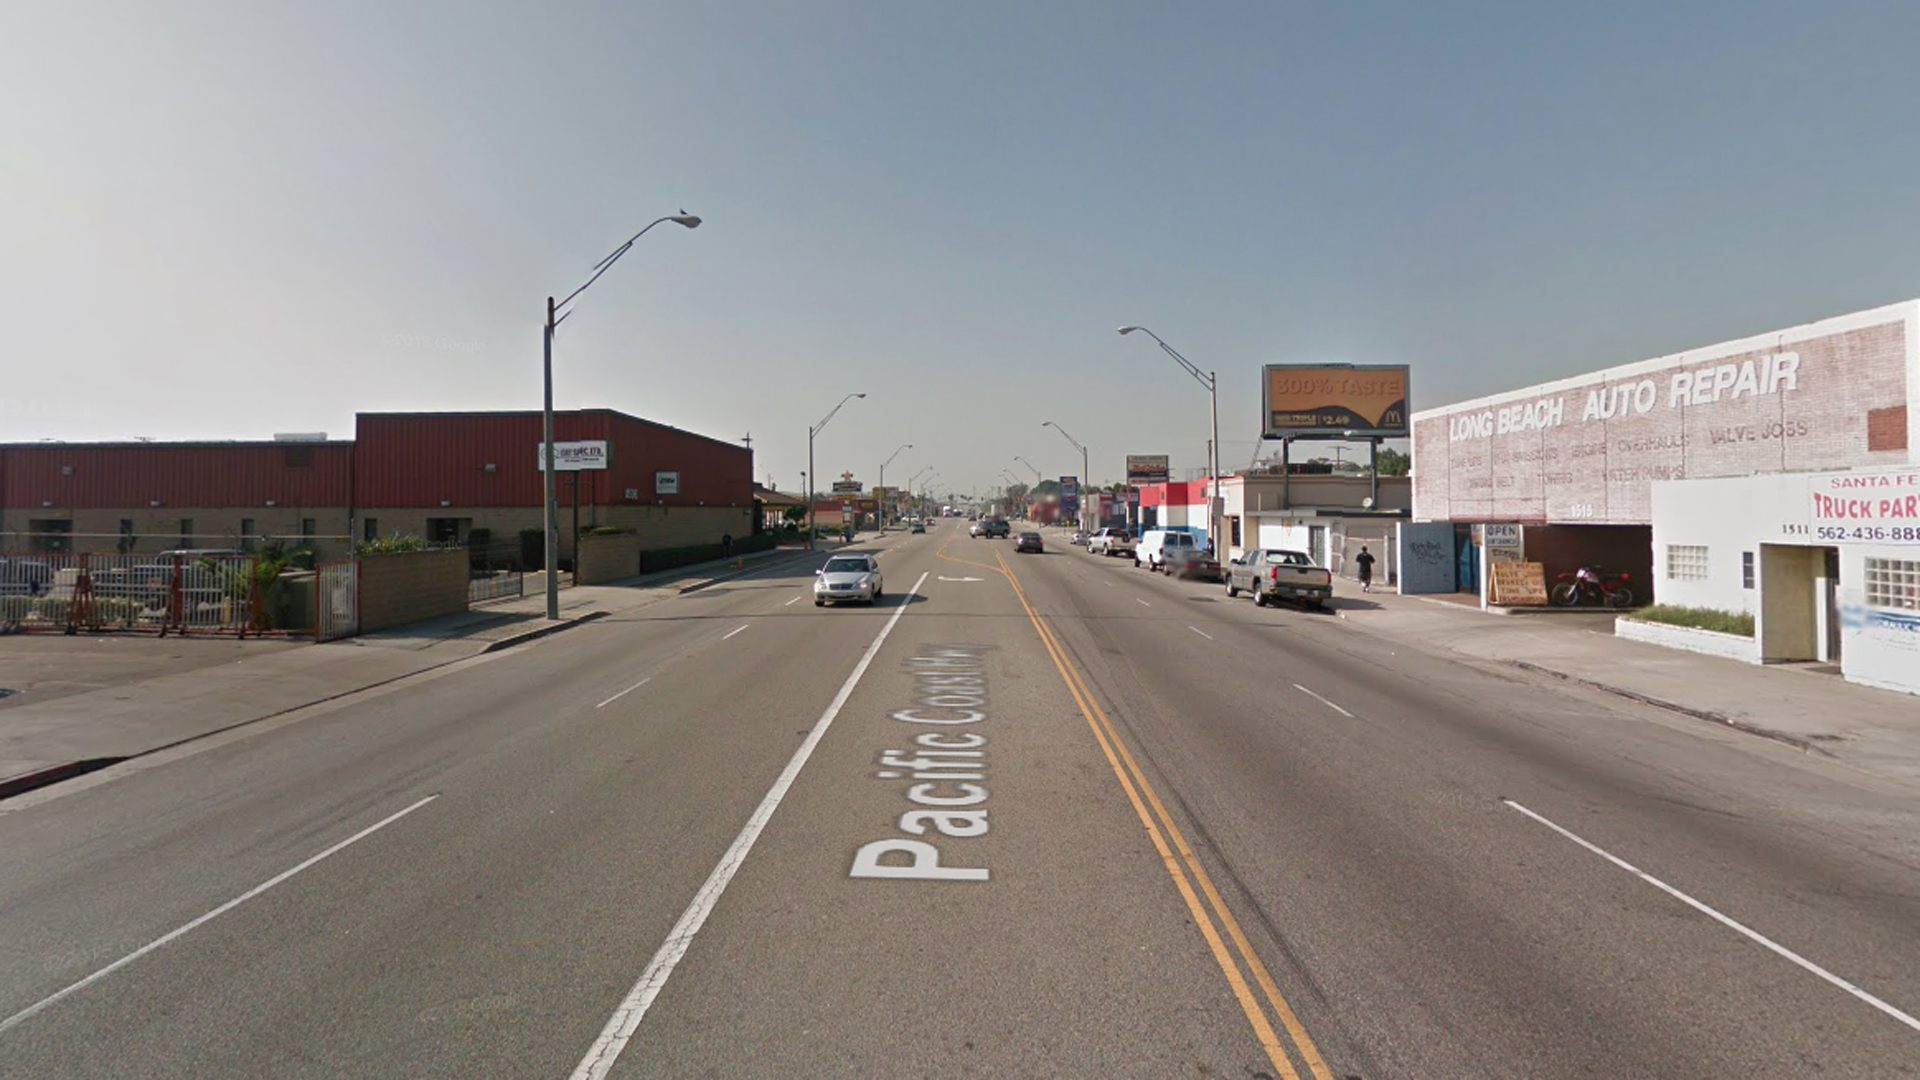 The 1500 block of West Pacific Coast Highway in Long Beach, as viewed in a Google Street View image.